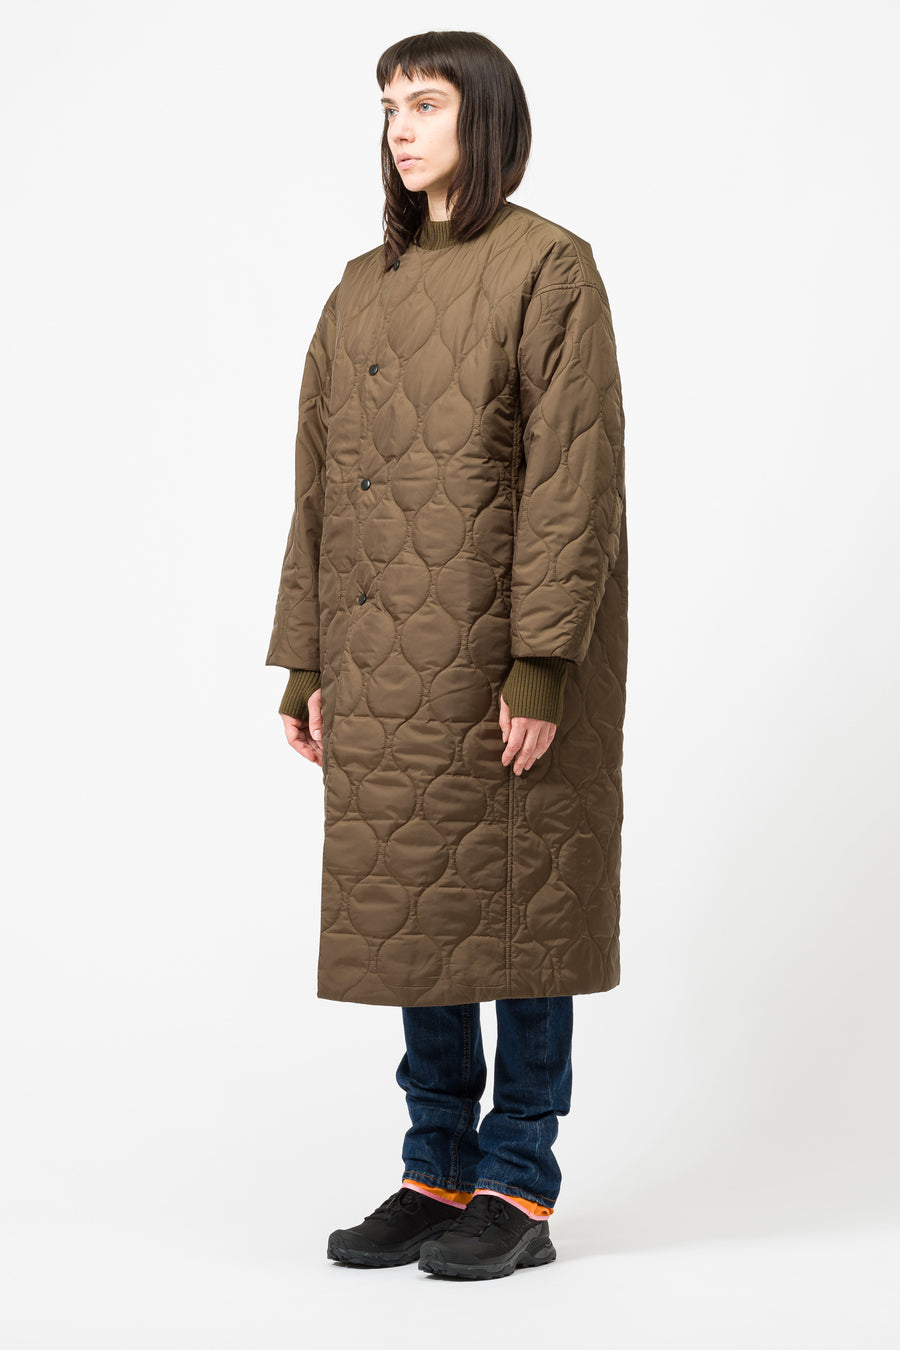 Hyke Woven Coat in Olive Drab - Notre